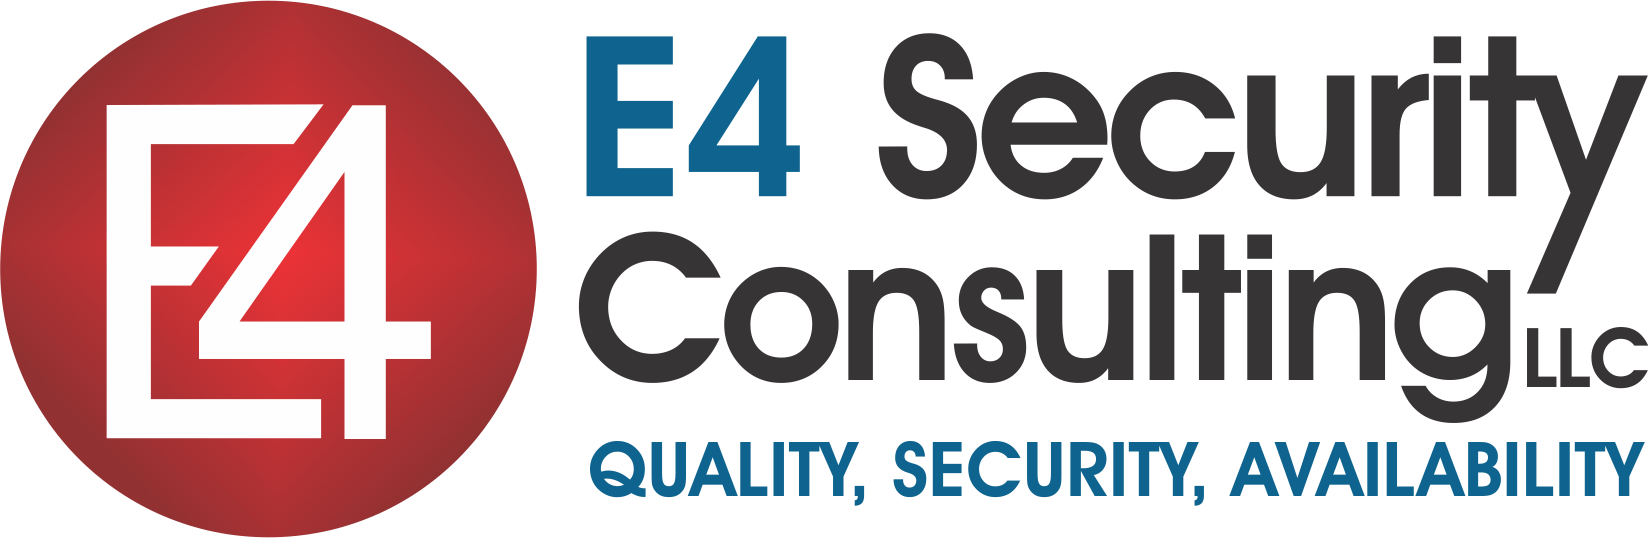 E4 Security Consulting, LLC